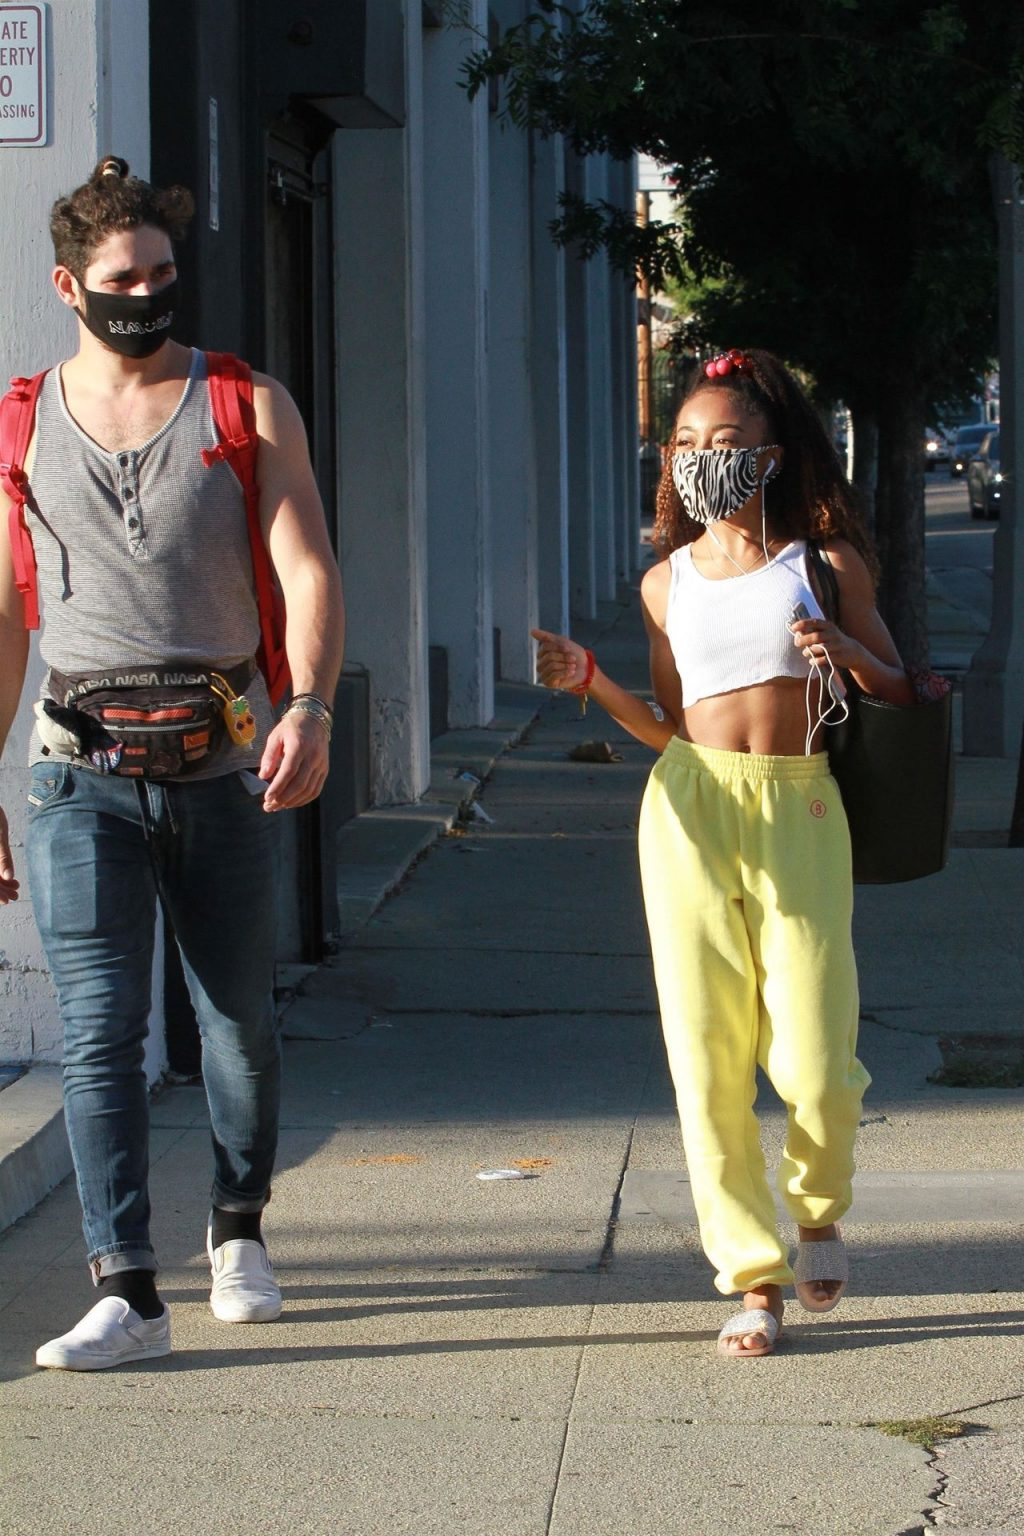 Skai Jackson Walks in With a Matching Postmates Delivery Cart (51 Photos)